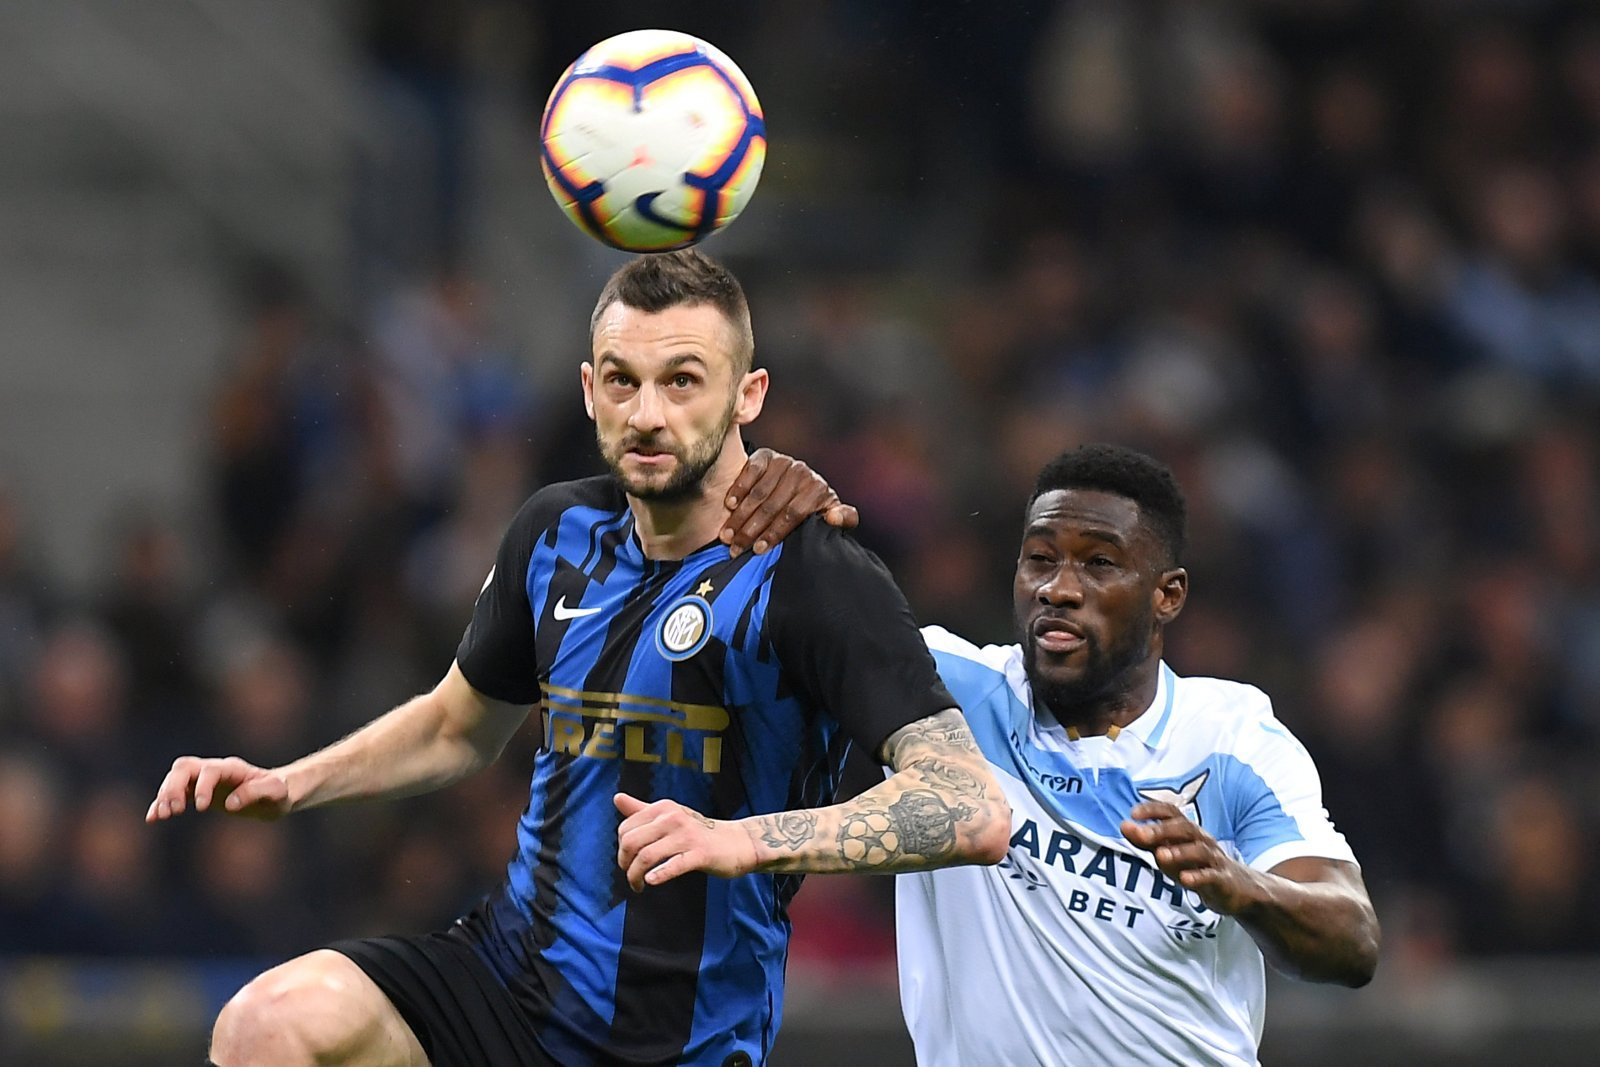 Unsung Hero: Marcelo Brozovic impressed again for Inernazionale as they beat Sassuolo